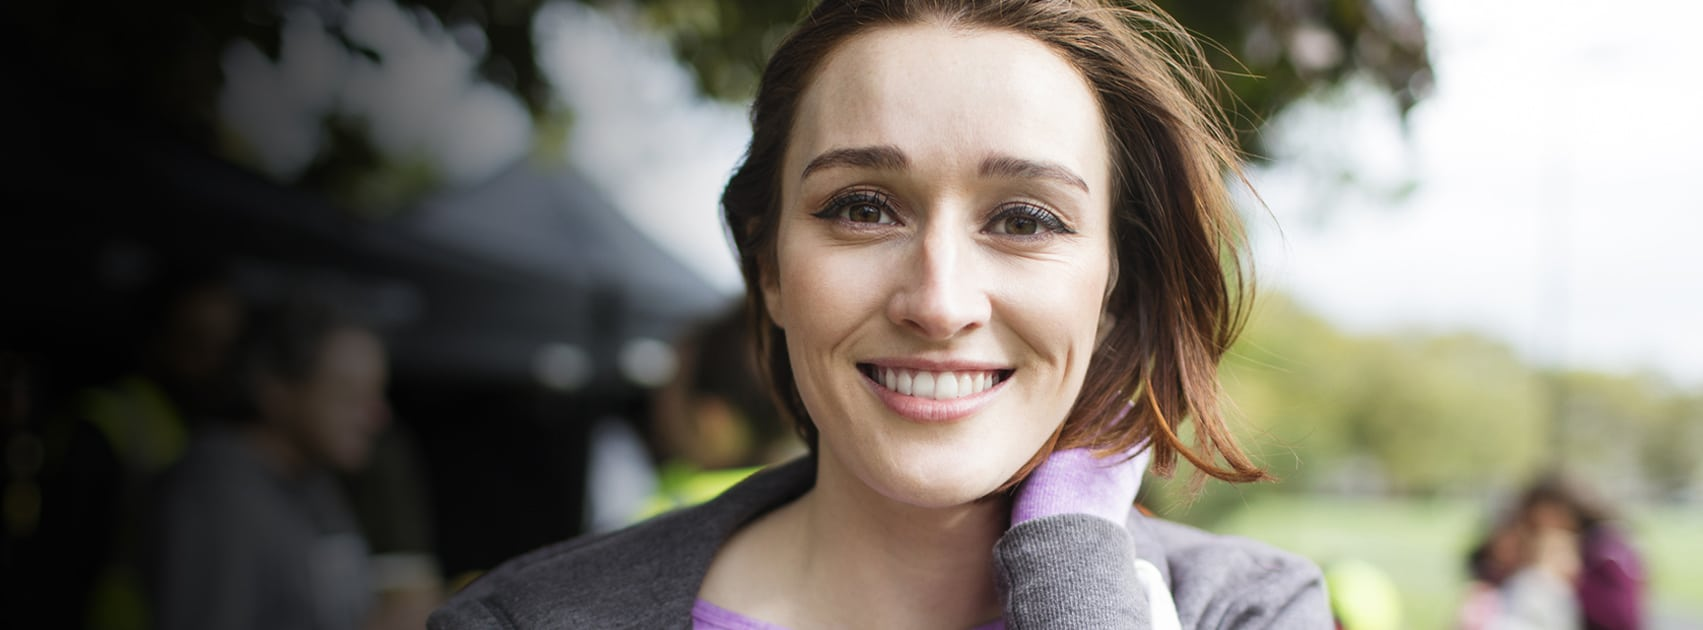 Banner image of a younger woman smiling